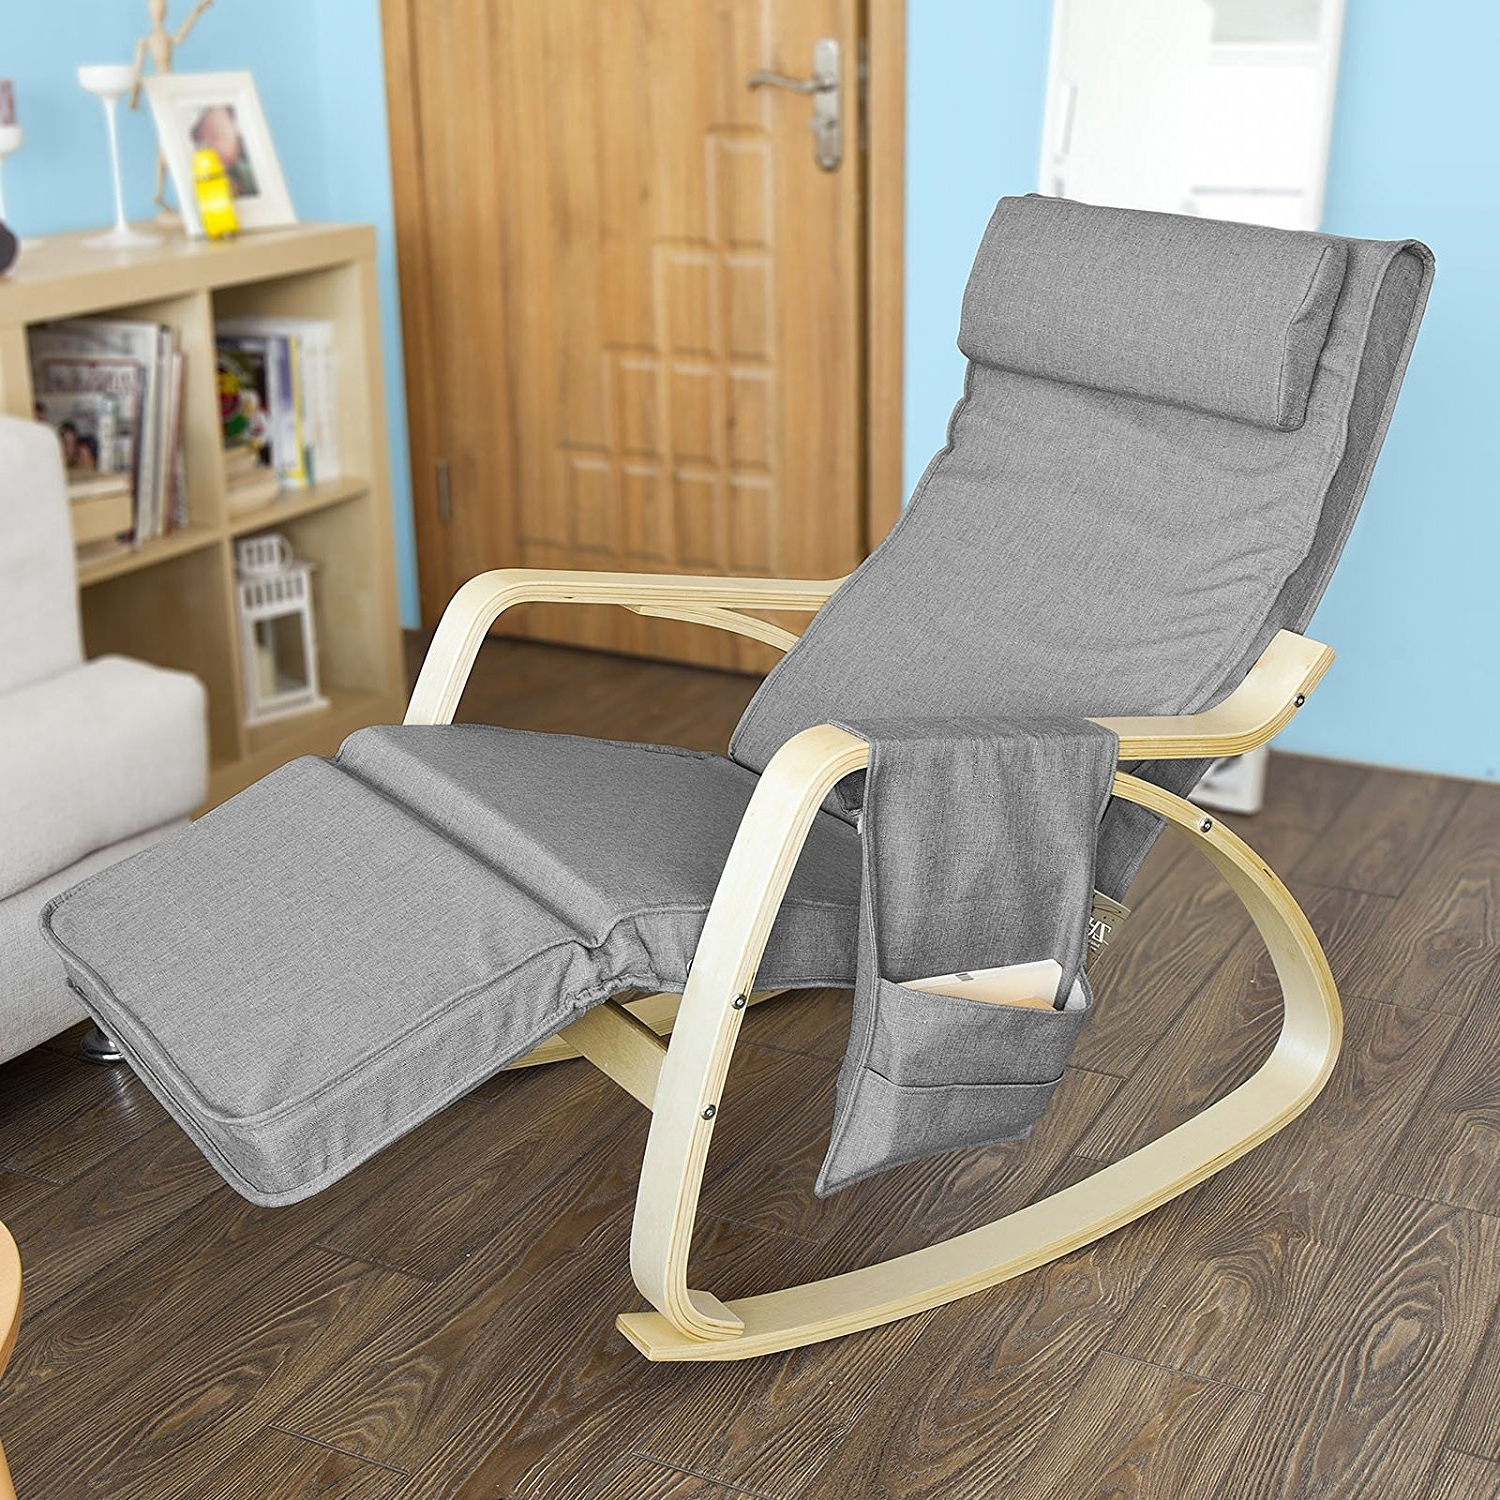 2017 Rock Away Back Pain Using Rocking Chairs/inversiontableplus With Rocking Chairs With Lumbar Support (View 9 of 15)